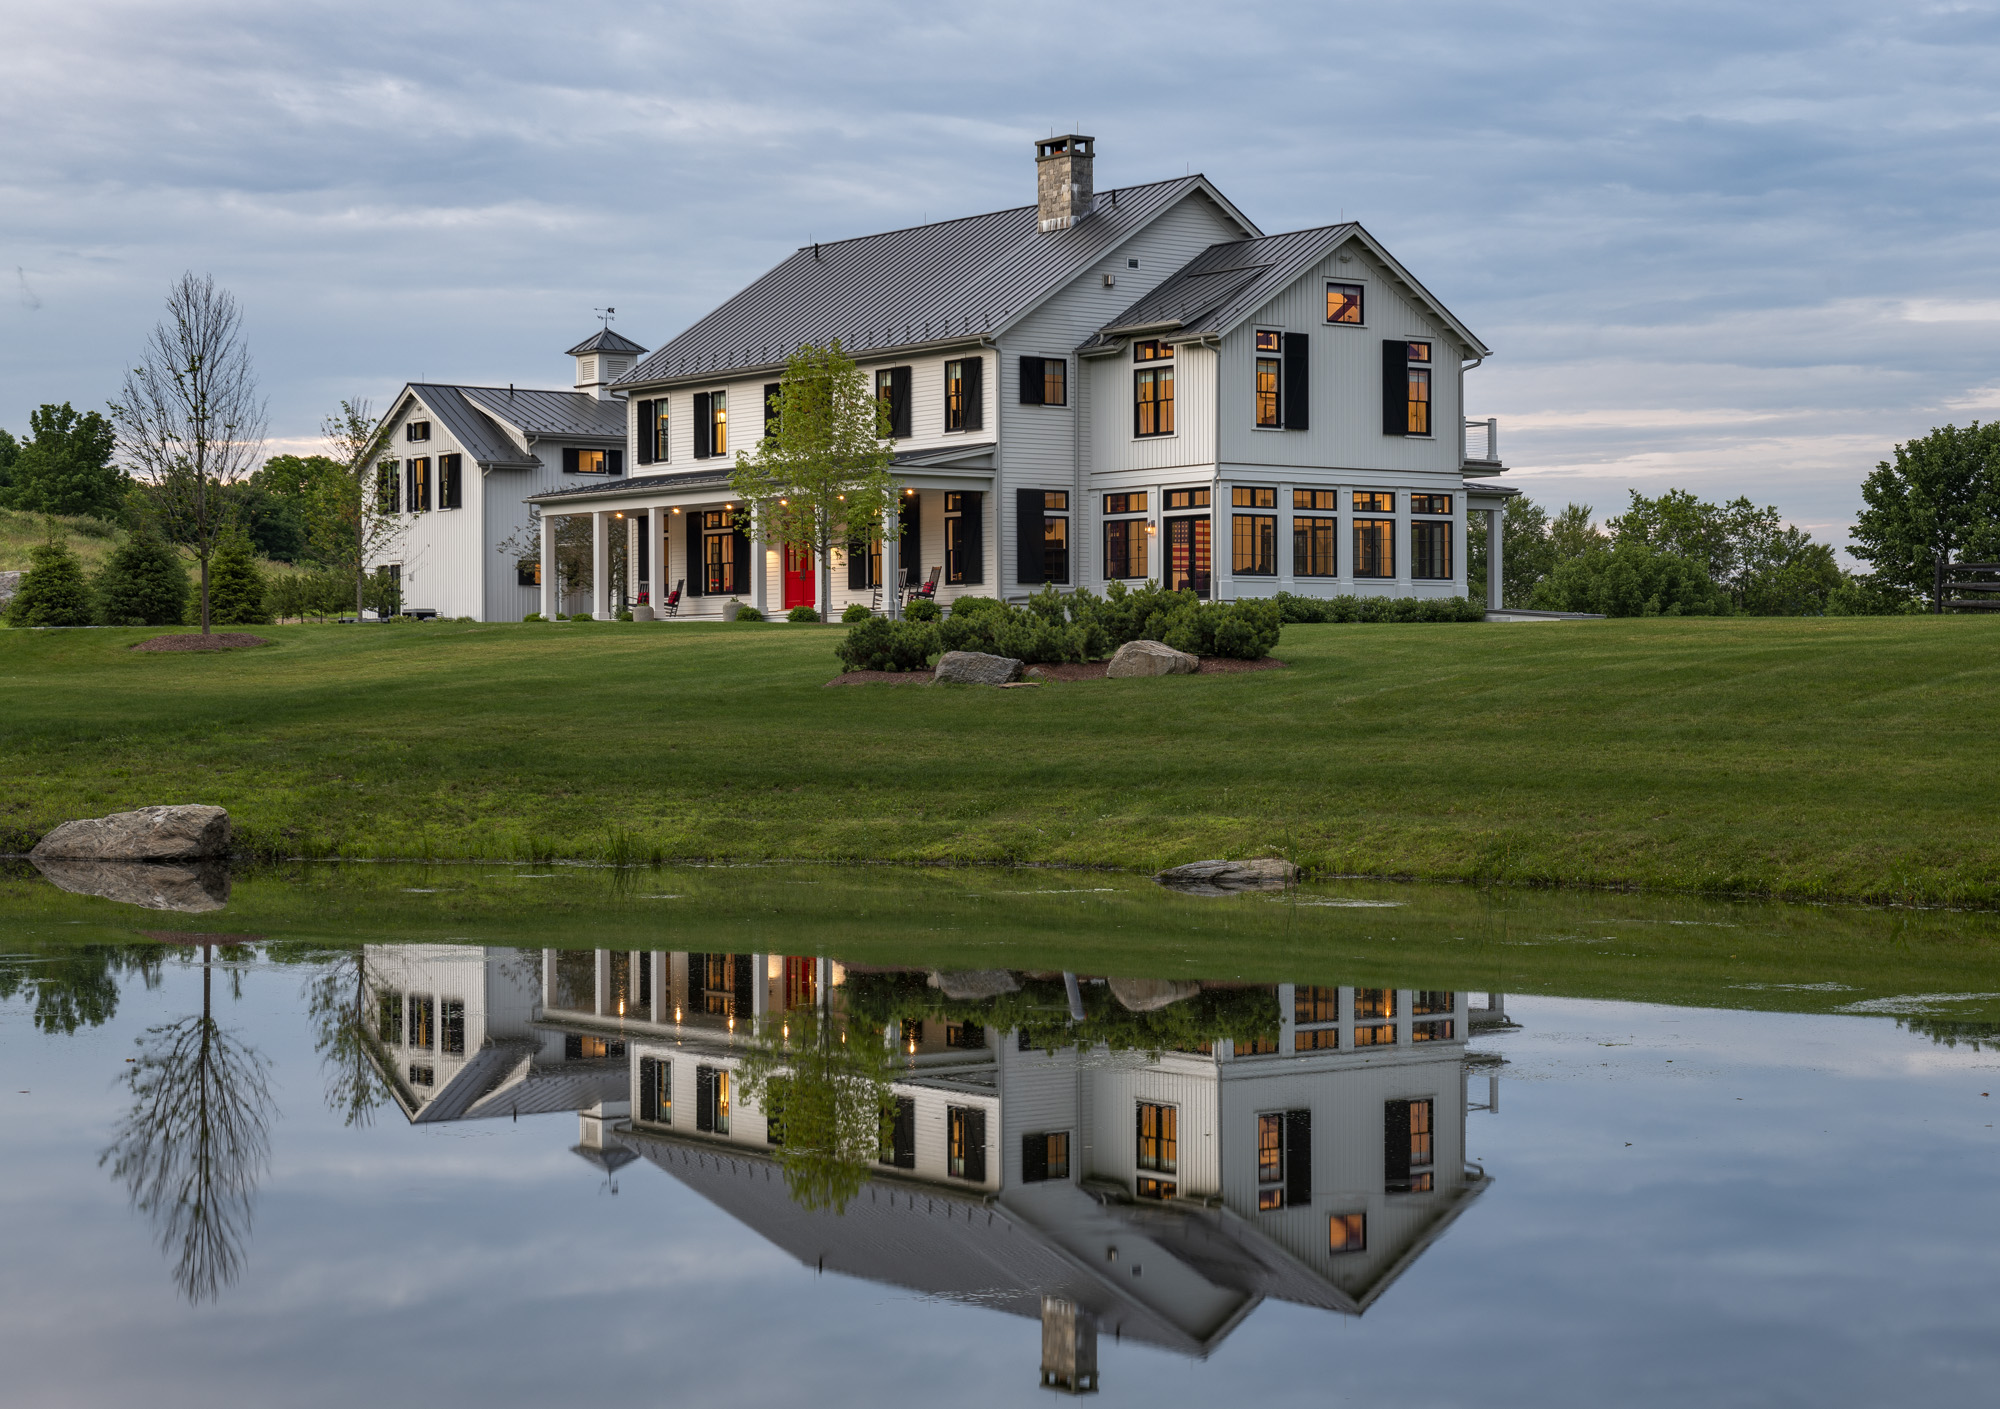 Modern Farmhouse in the Country